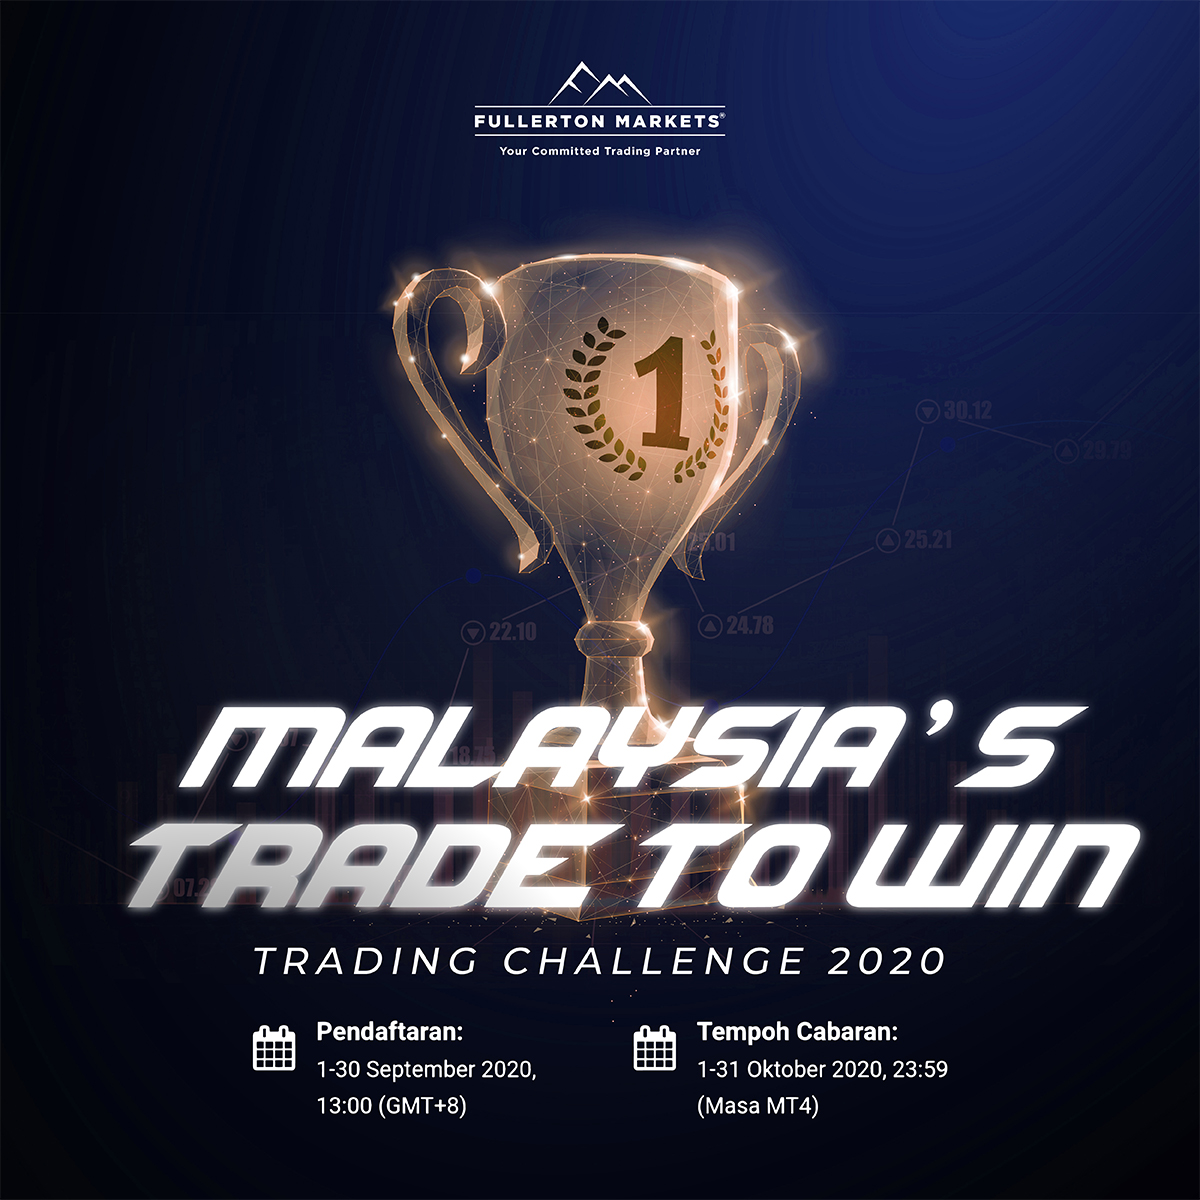 Trade to Win Challenge